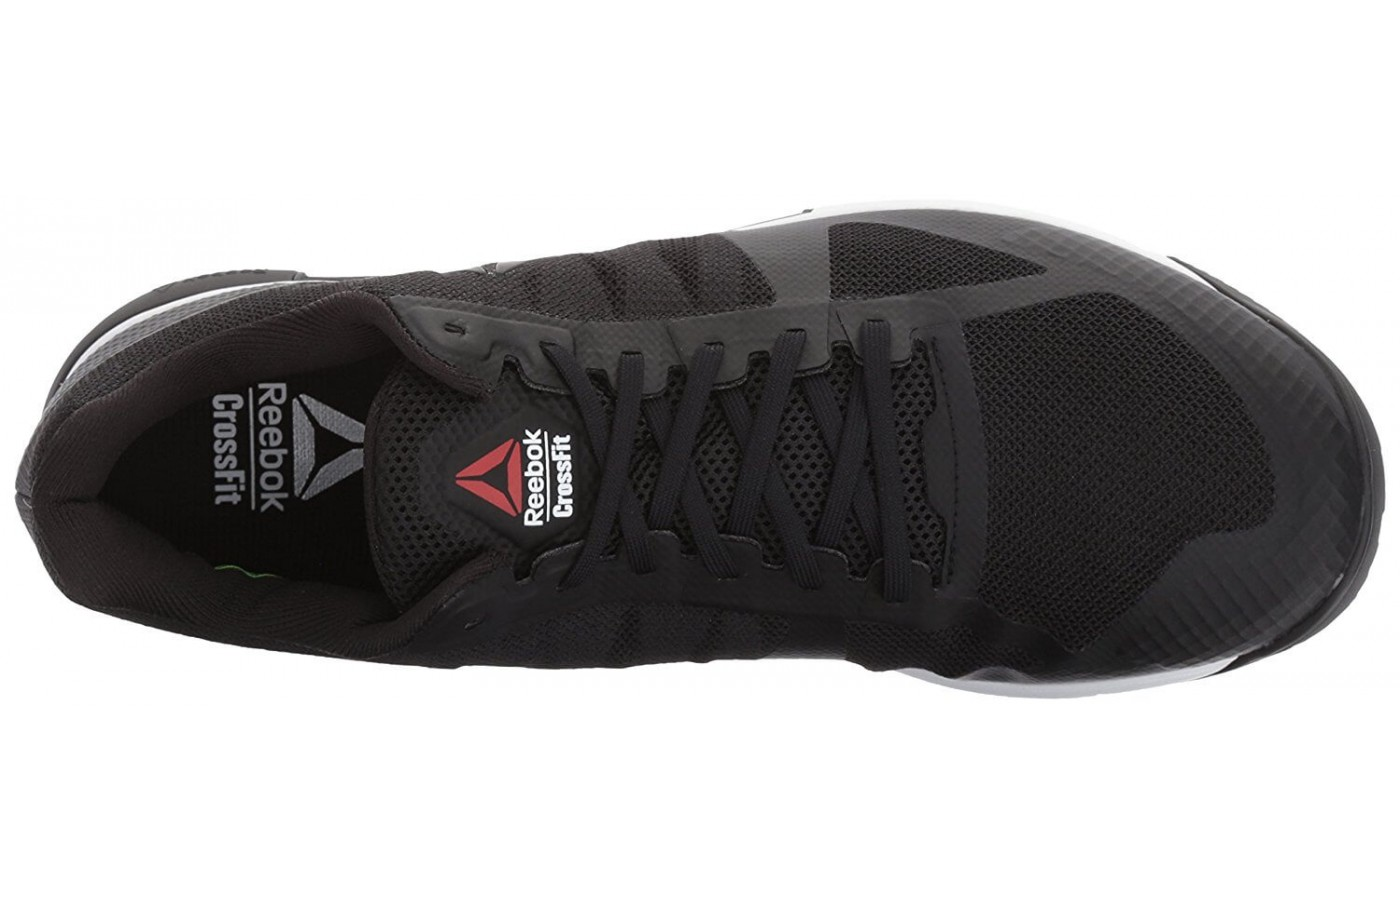 f5ad296f5e2 ... Breathability is guaranteed while wearing the Reebok Crossfit Speed TR  2.0 thanks to its upper.